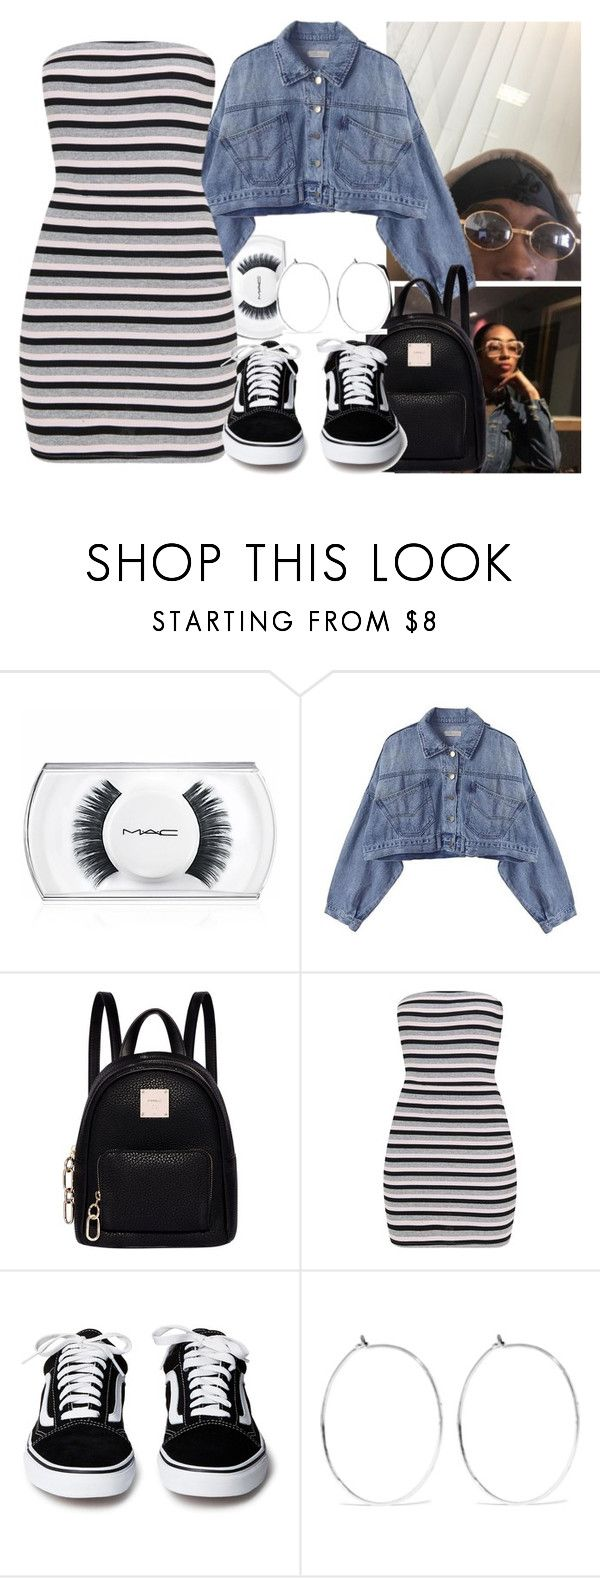 """d i s t a n t"" by oshonsparkles ❤ liked on Polyvore featuring MAC Cosmetics, Fiorelli and Catbird"